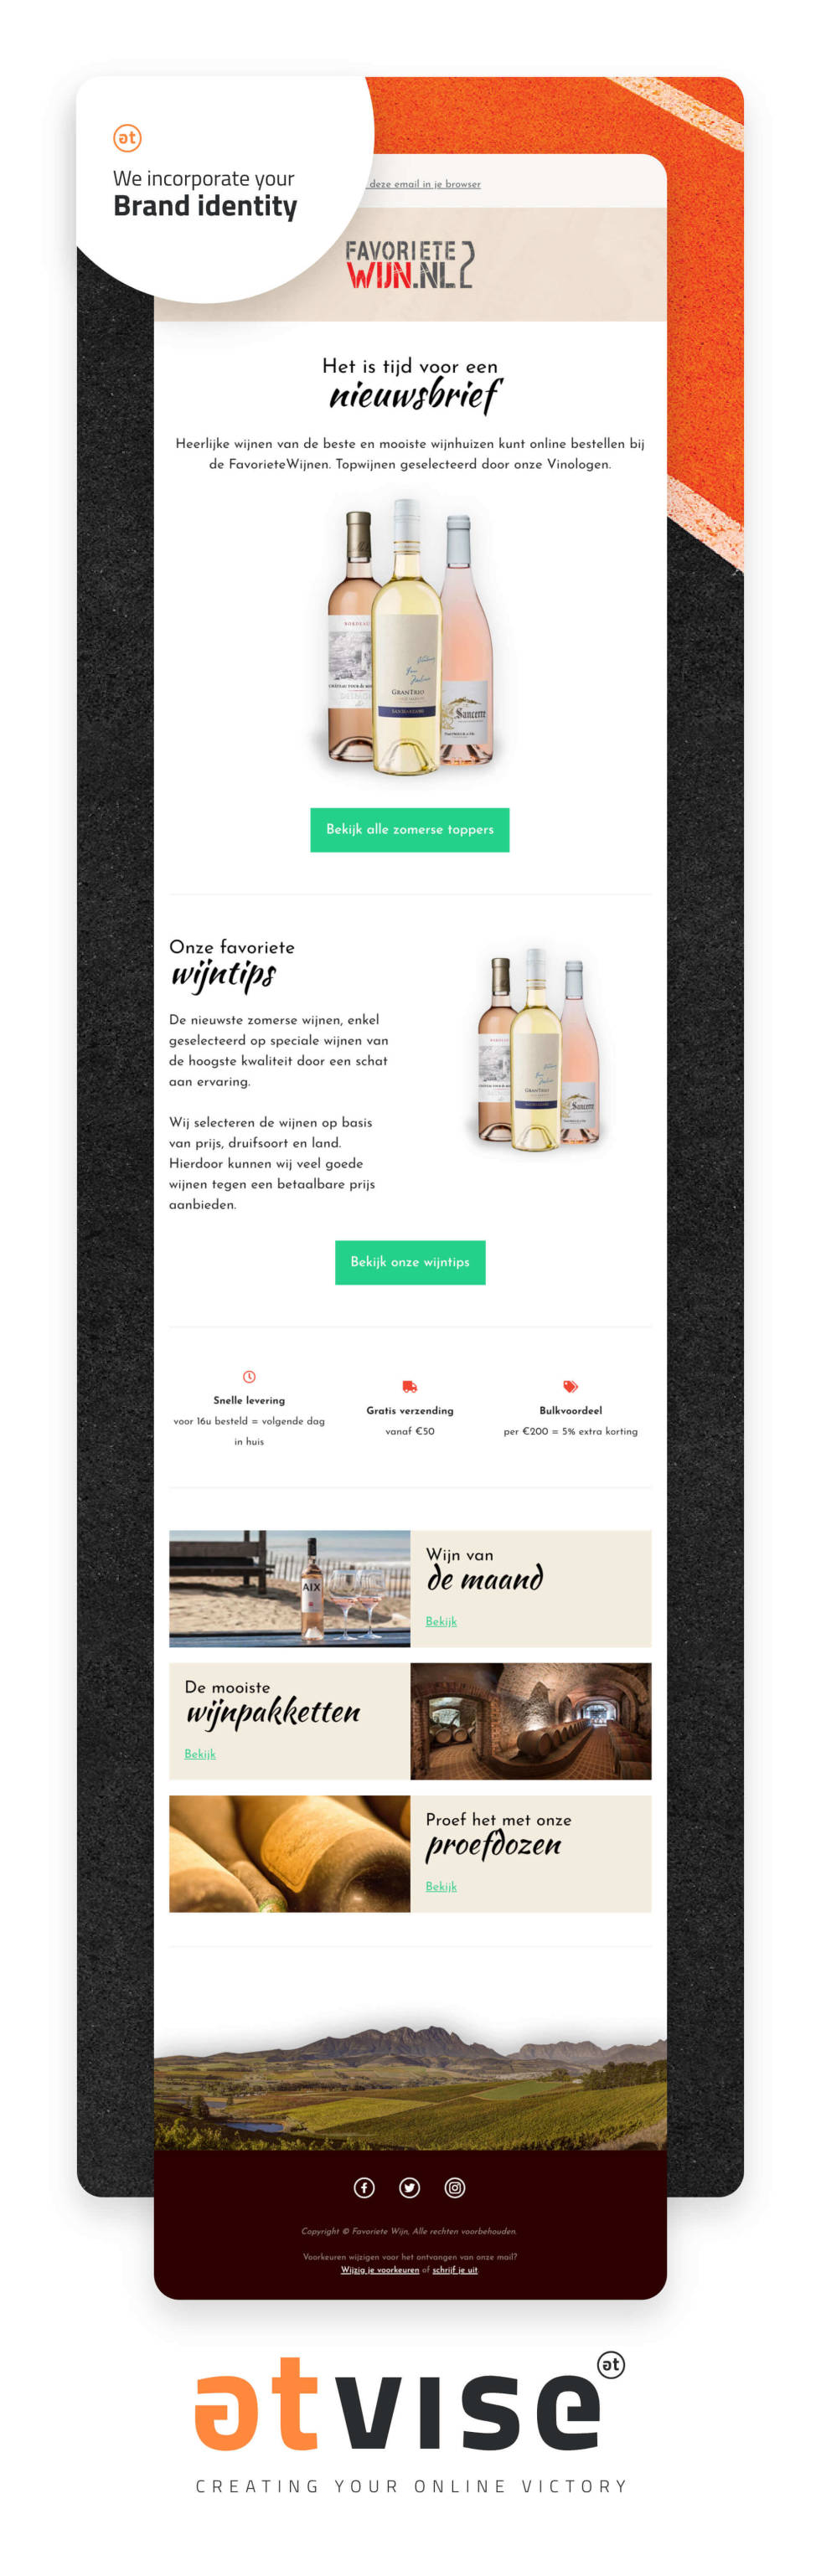 Newsletter template in email format showing branding for wine company.